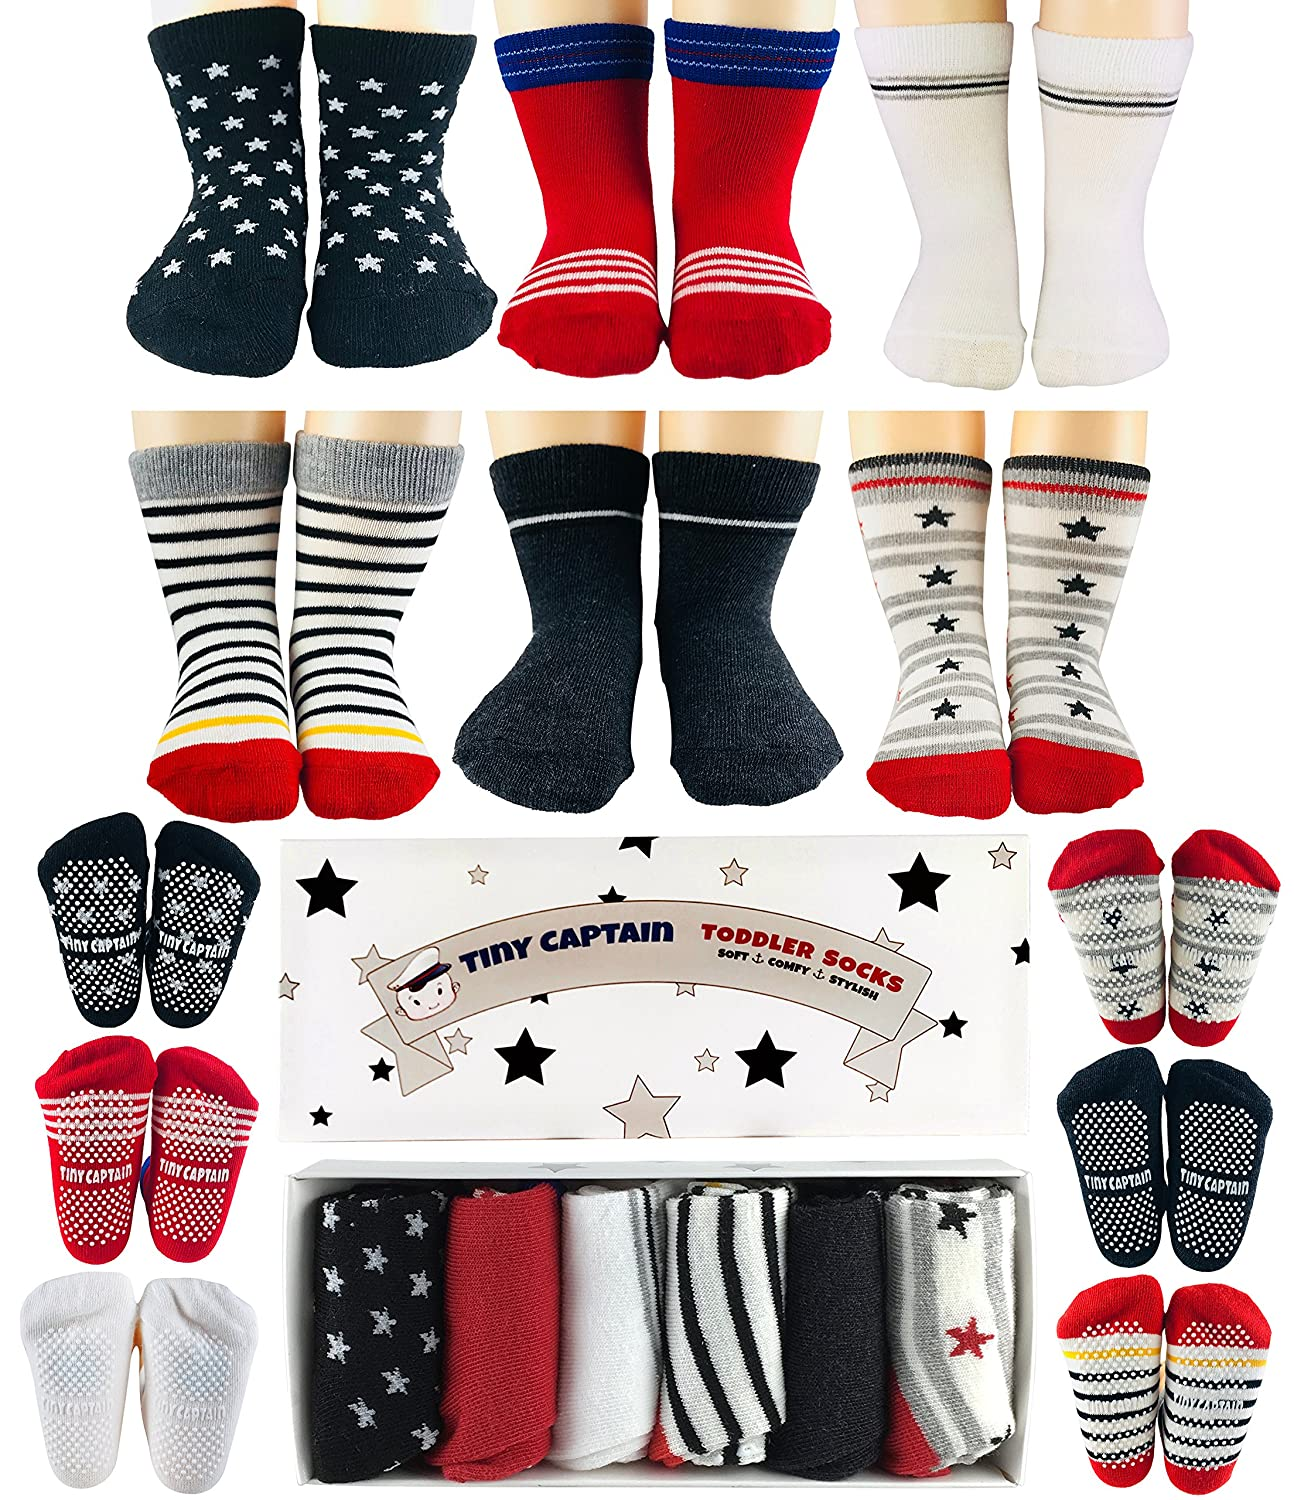 a68e4f9b19ca1 Toddler Boy Non Slip Socks, Best Gift for 1-3 Year Old Boys Baby Gifts Anti  Slip Non Skid Grip Socks Gift Set by Tiny Captain (Red and Black)